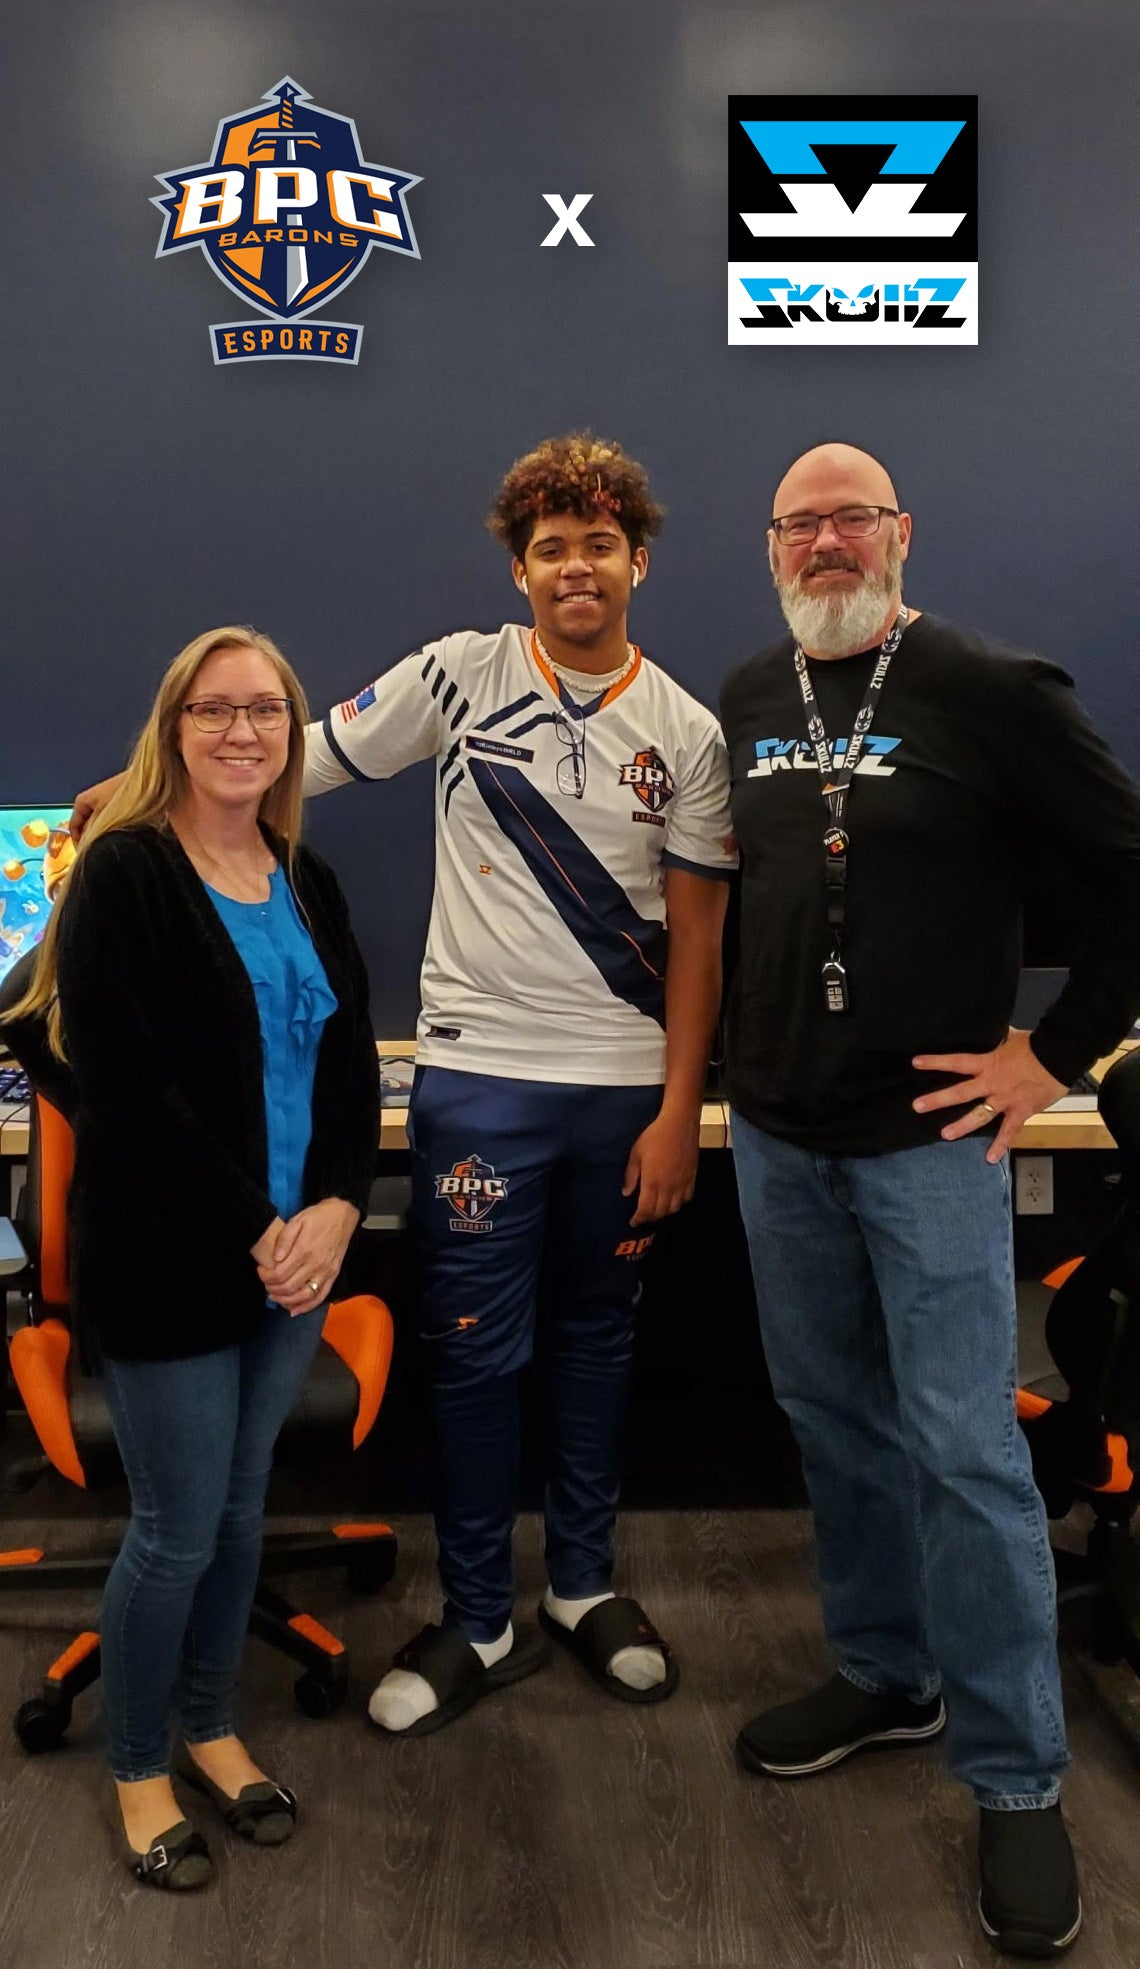 Brewton-Parker College receives esports jersey and gear from Skullz.